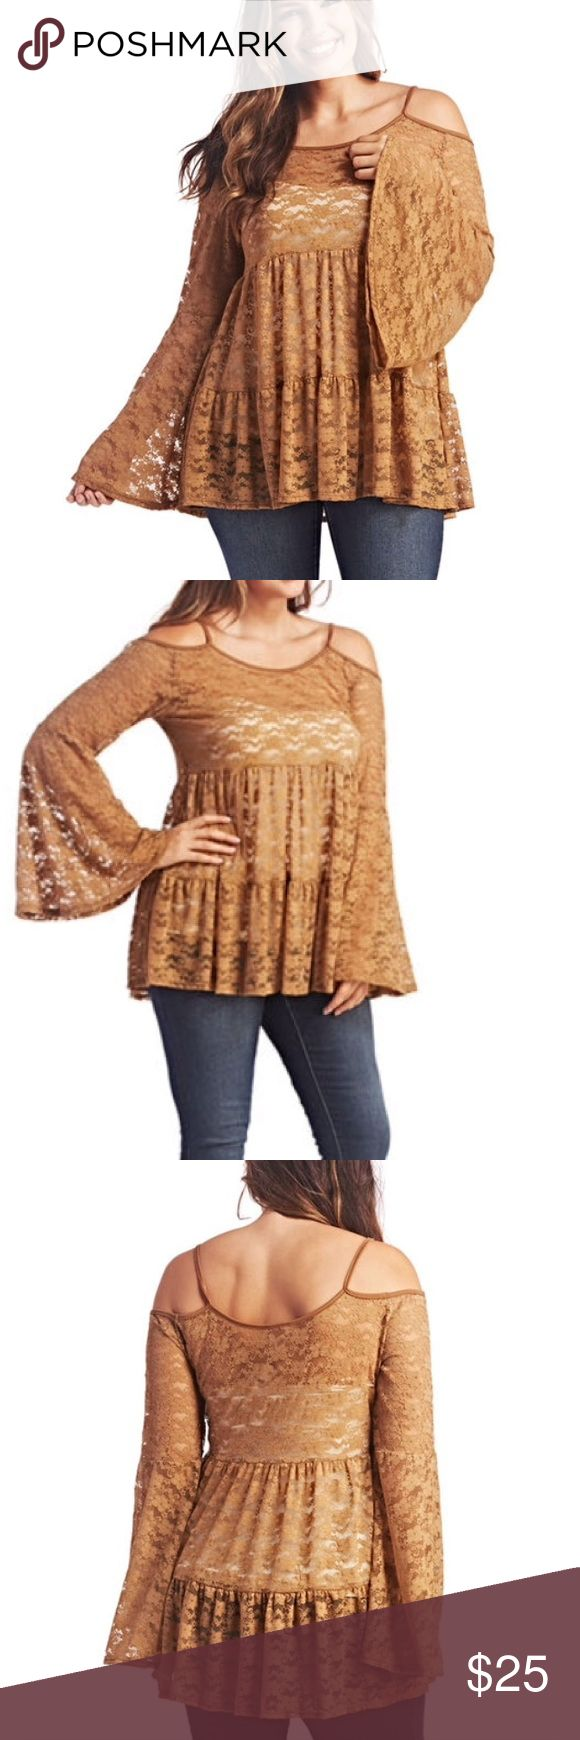 NWT 1x cold shoulder bell sleeve lace babydoll top NWT 1x wet seal plus cold shoulder babydoll top with bell sleeves . Stretch lace . Camel. Available in black in separate listing Wet Seal Tops Blouses